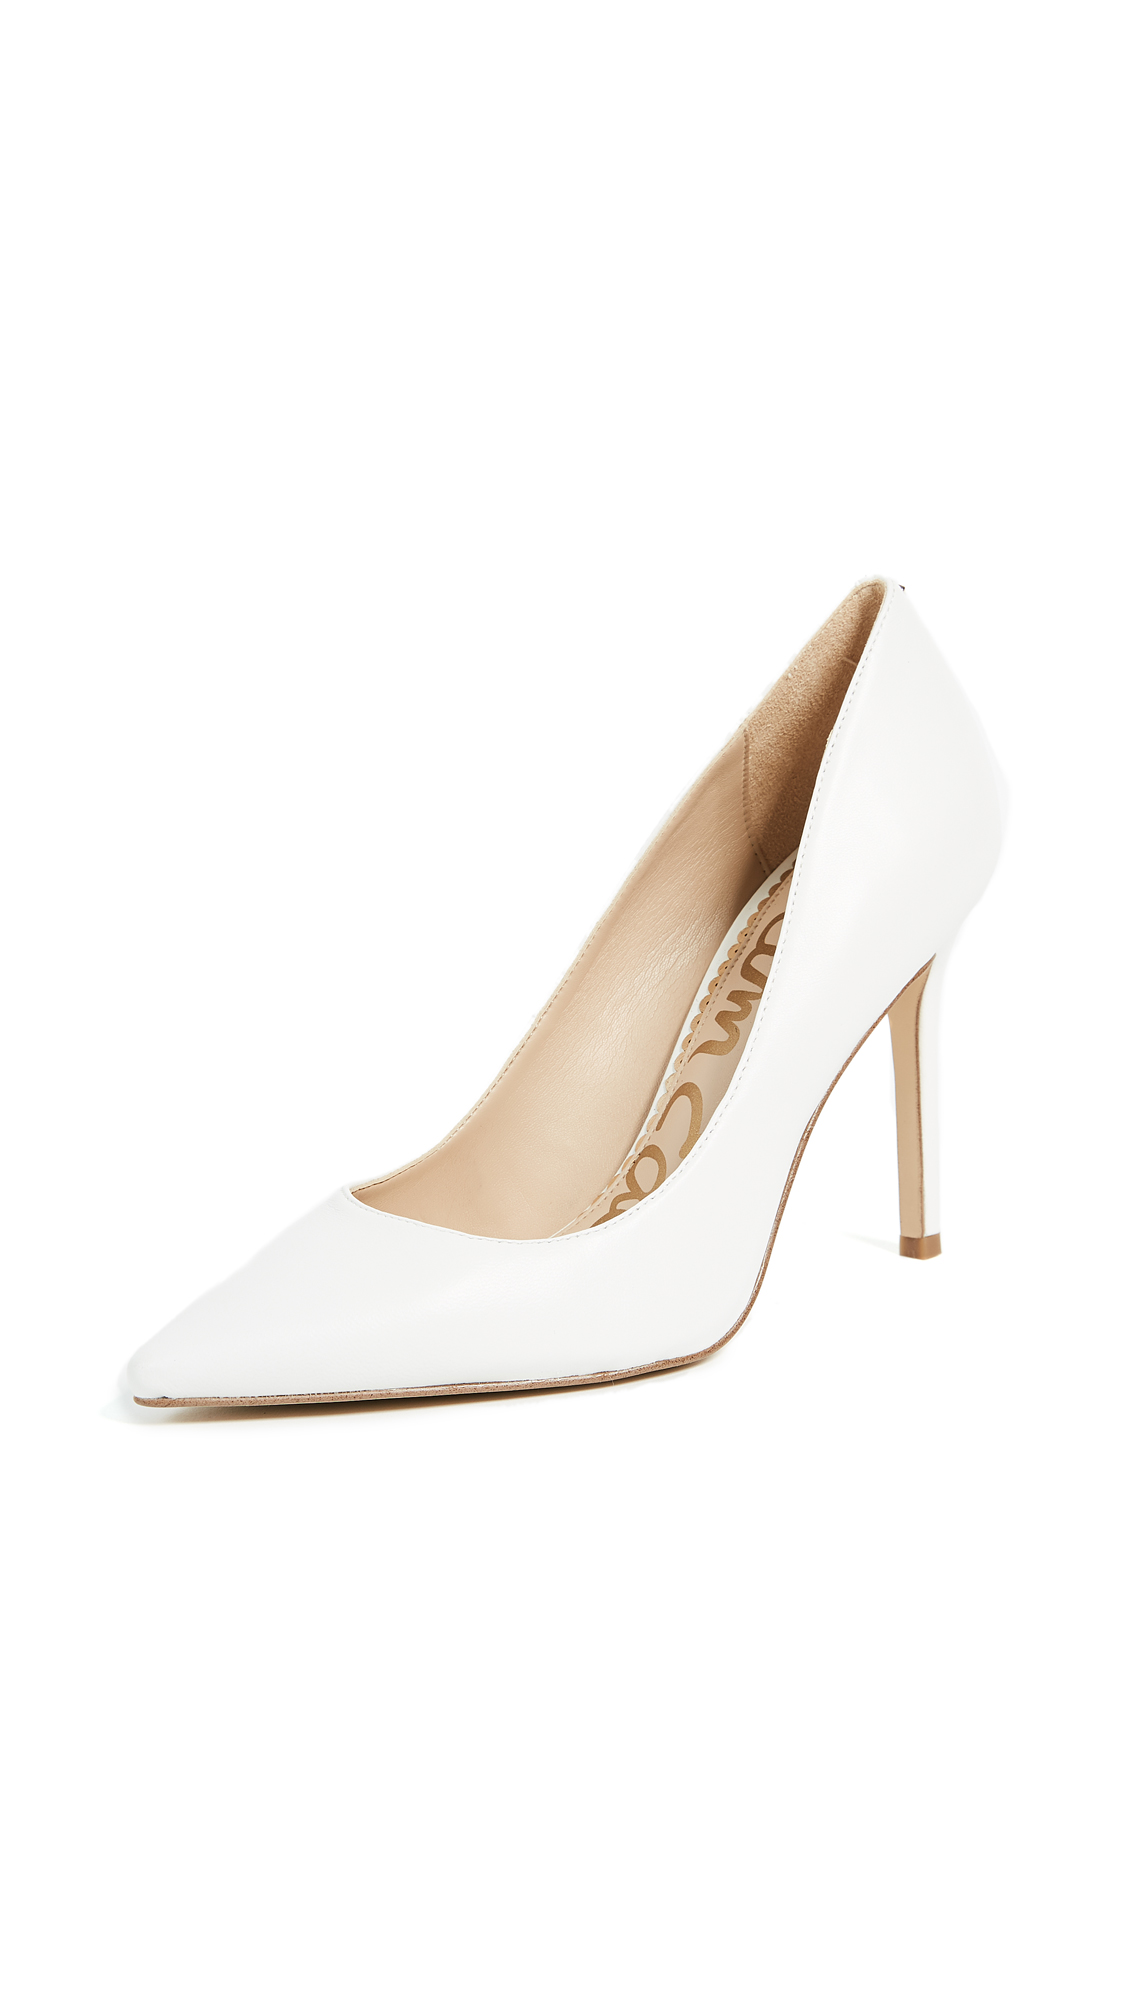 Sam Edelman Hazel Pumps - Bright White